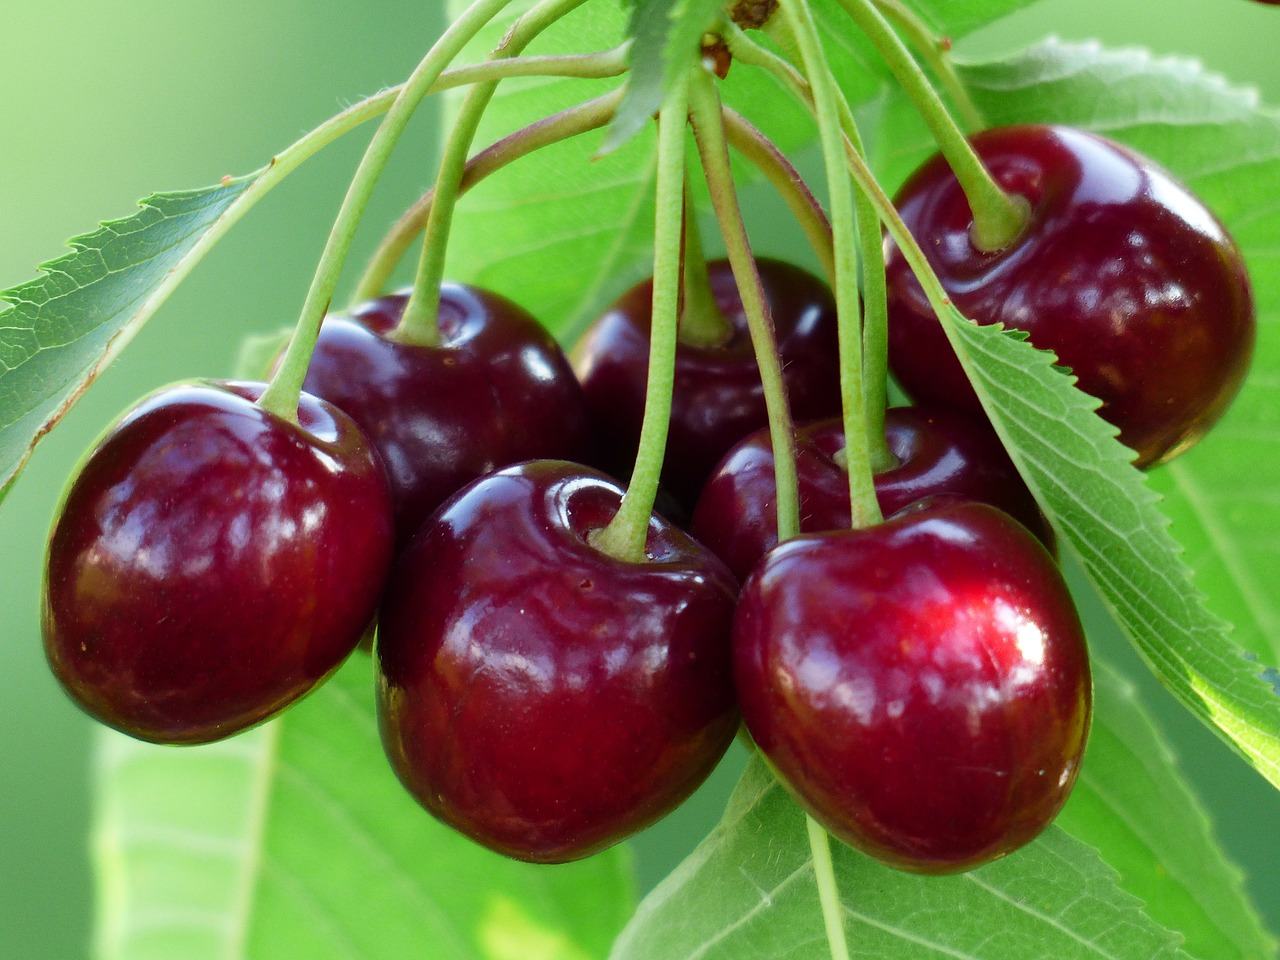 The level of anthocyanidin in cherries is higher than those in grapes, strawberries, and blue berries. (Image: pixabay / CC0 1.0)